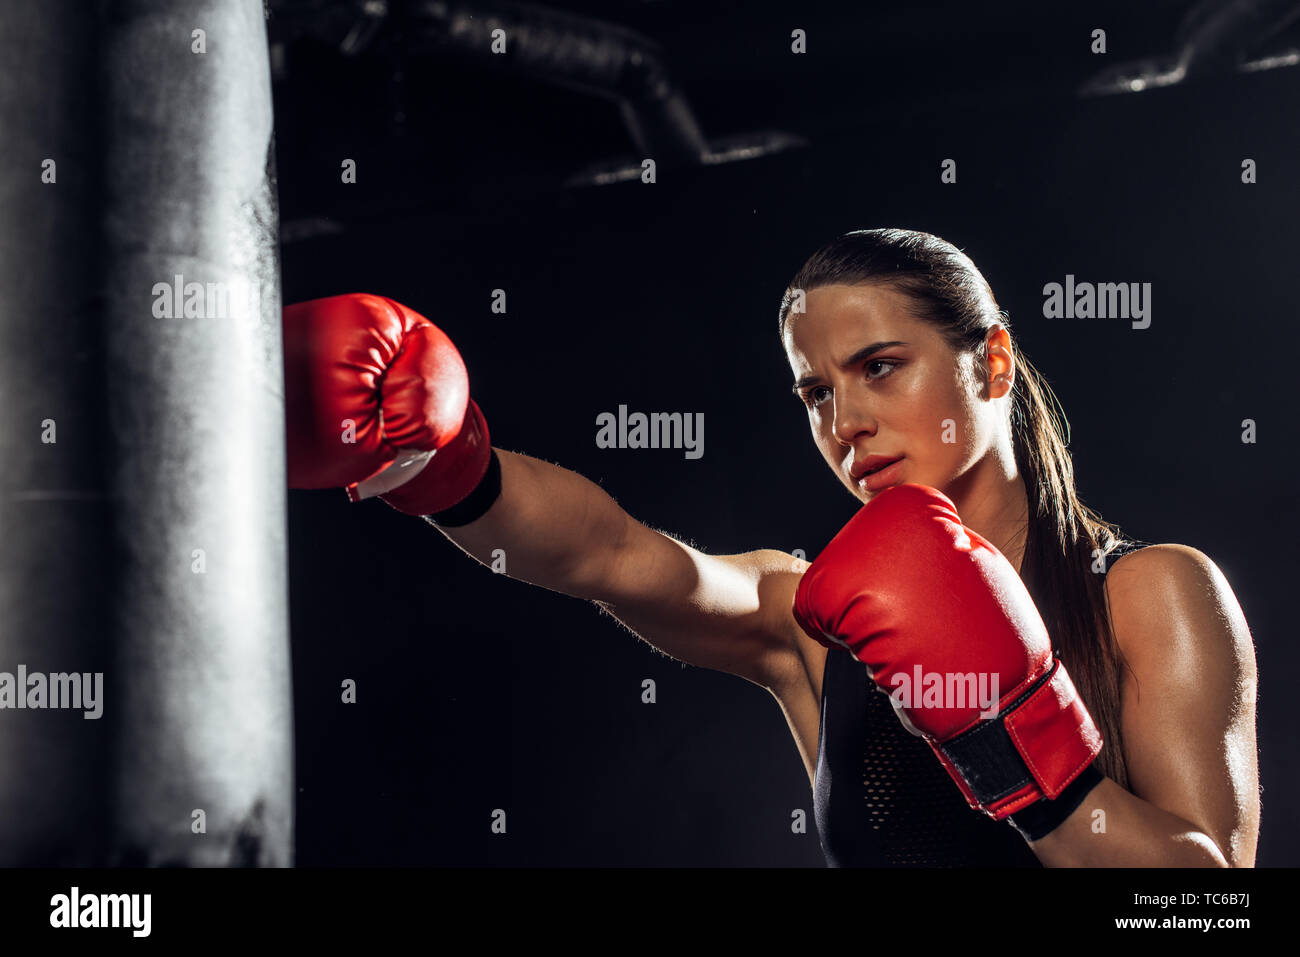 Female boxer in red boxing gloves training with punching bag - Stock Image